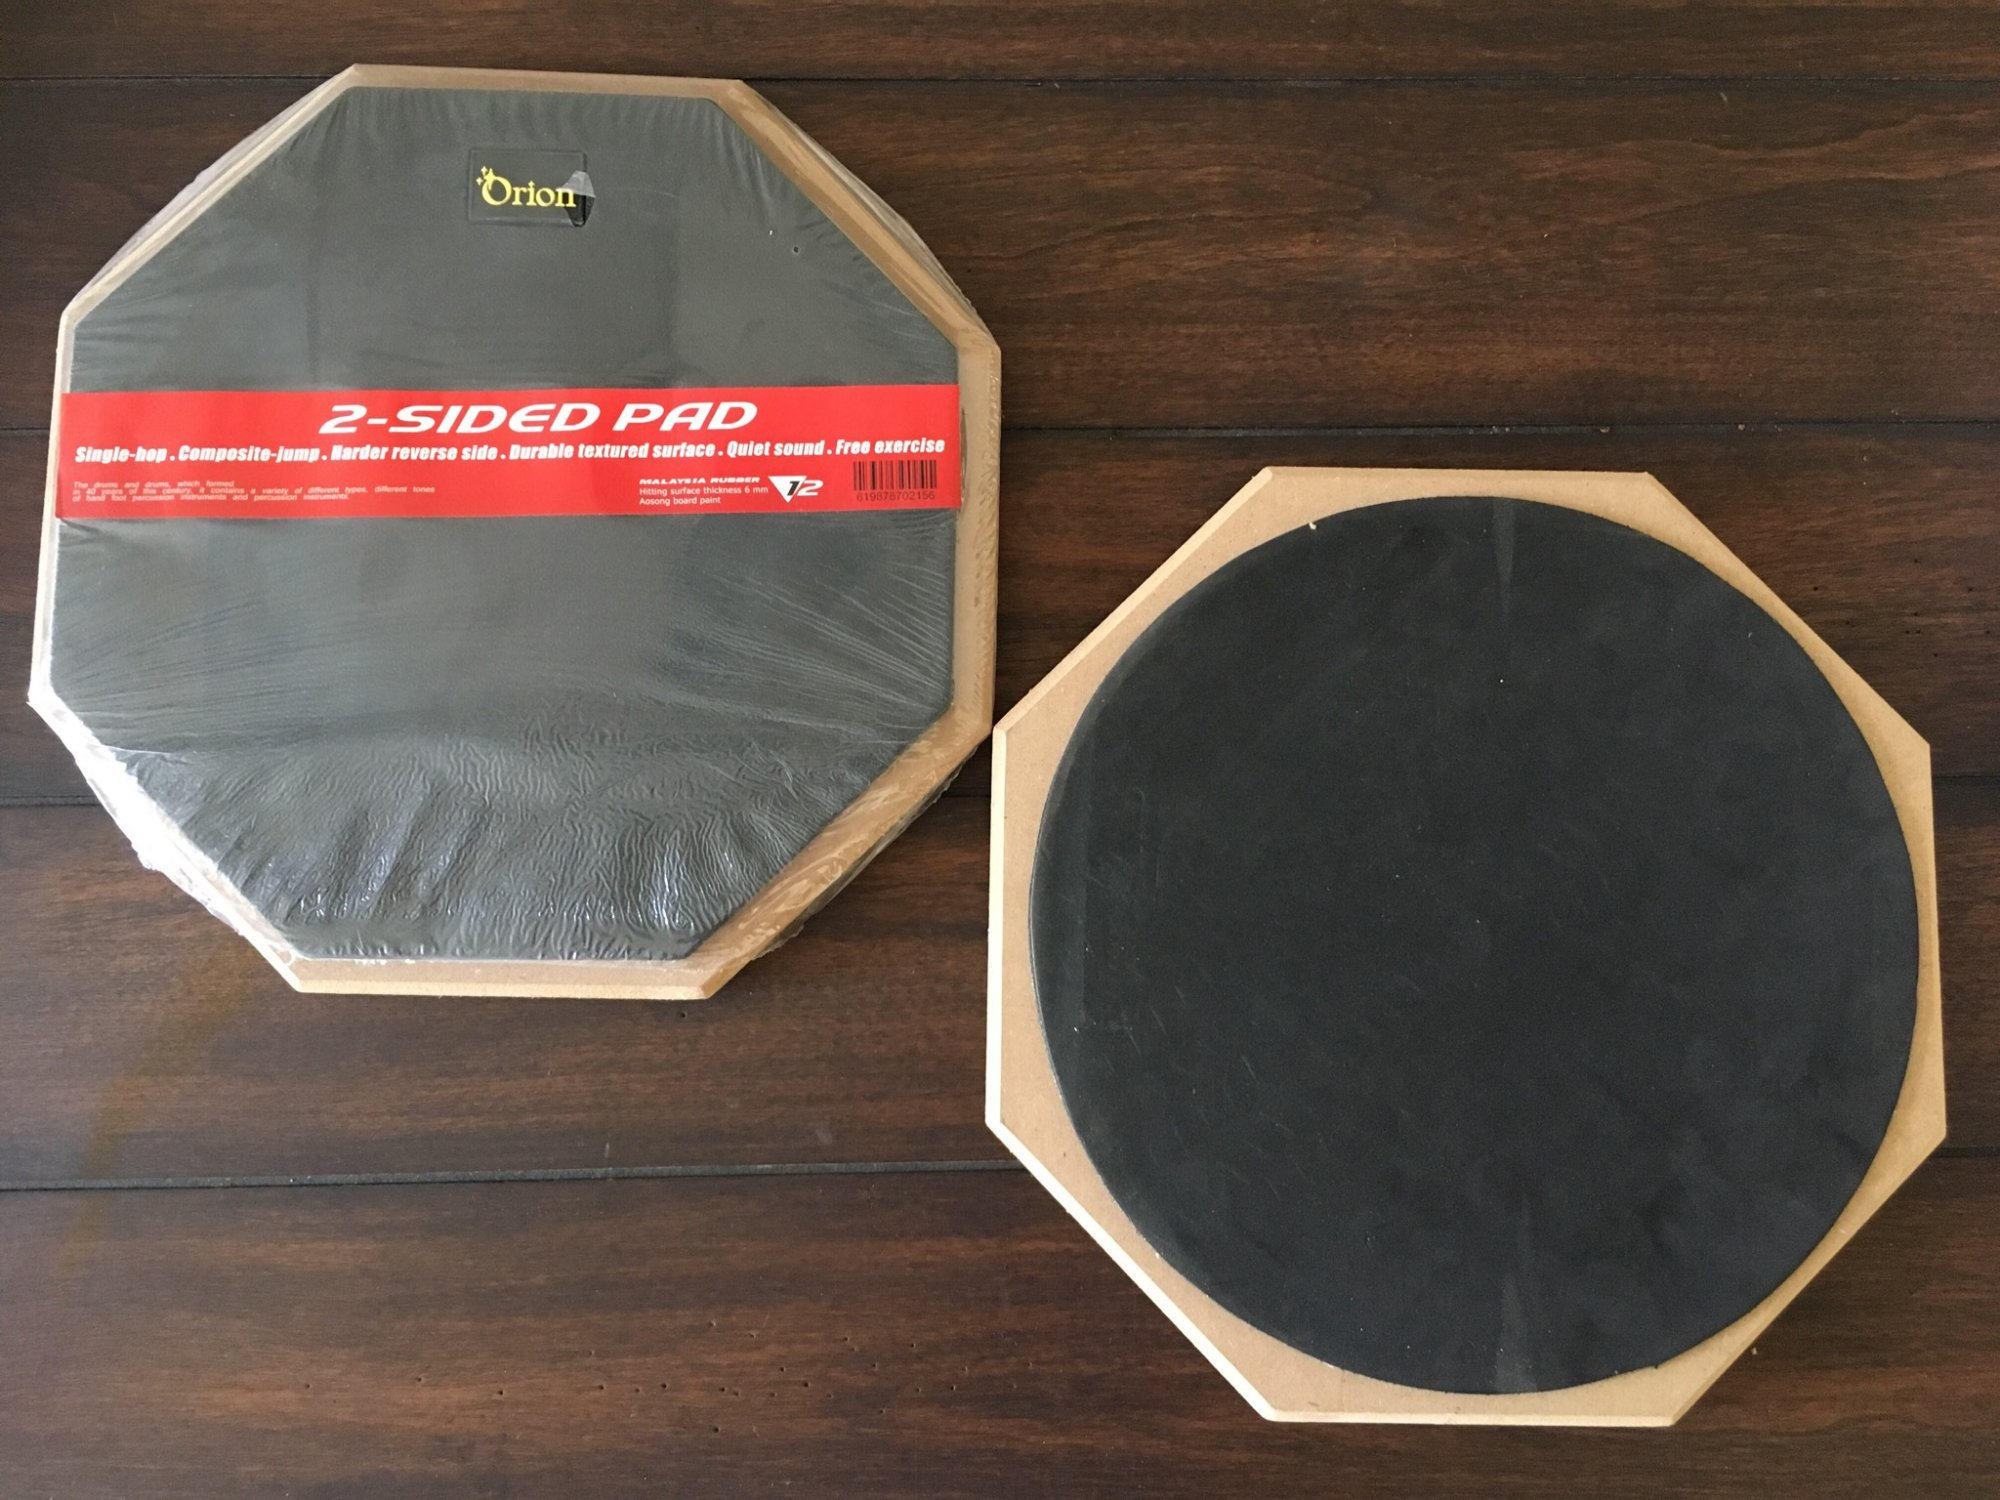 Orion 12 2-Sided Drum Pad - Black